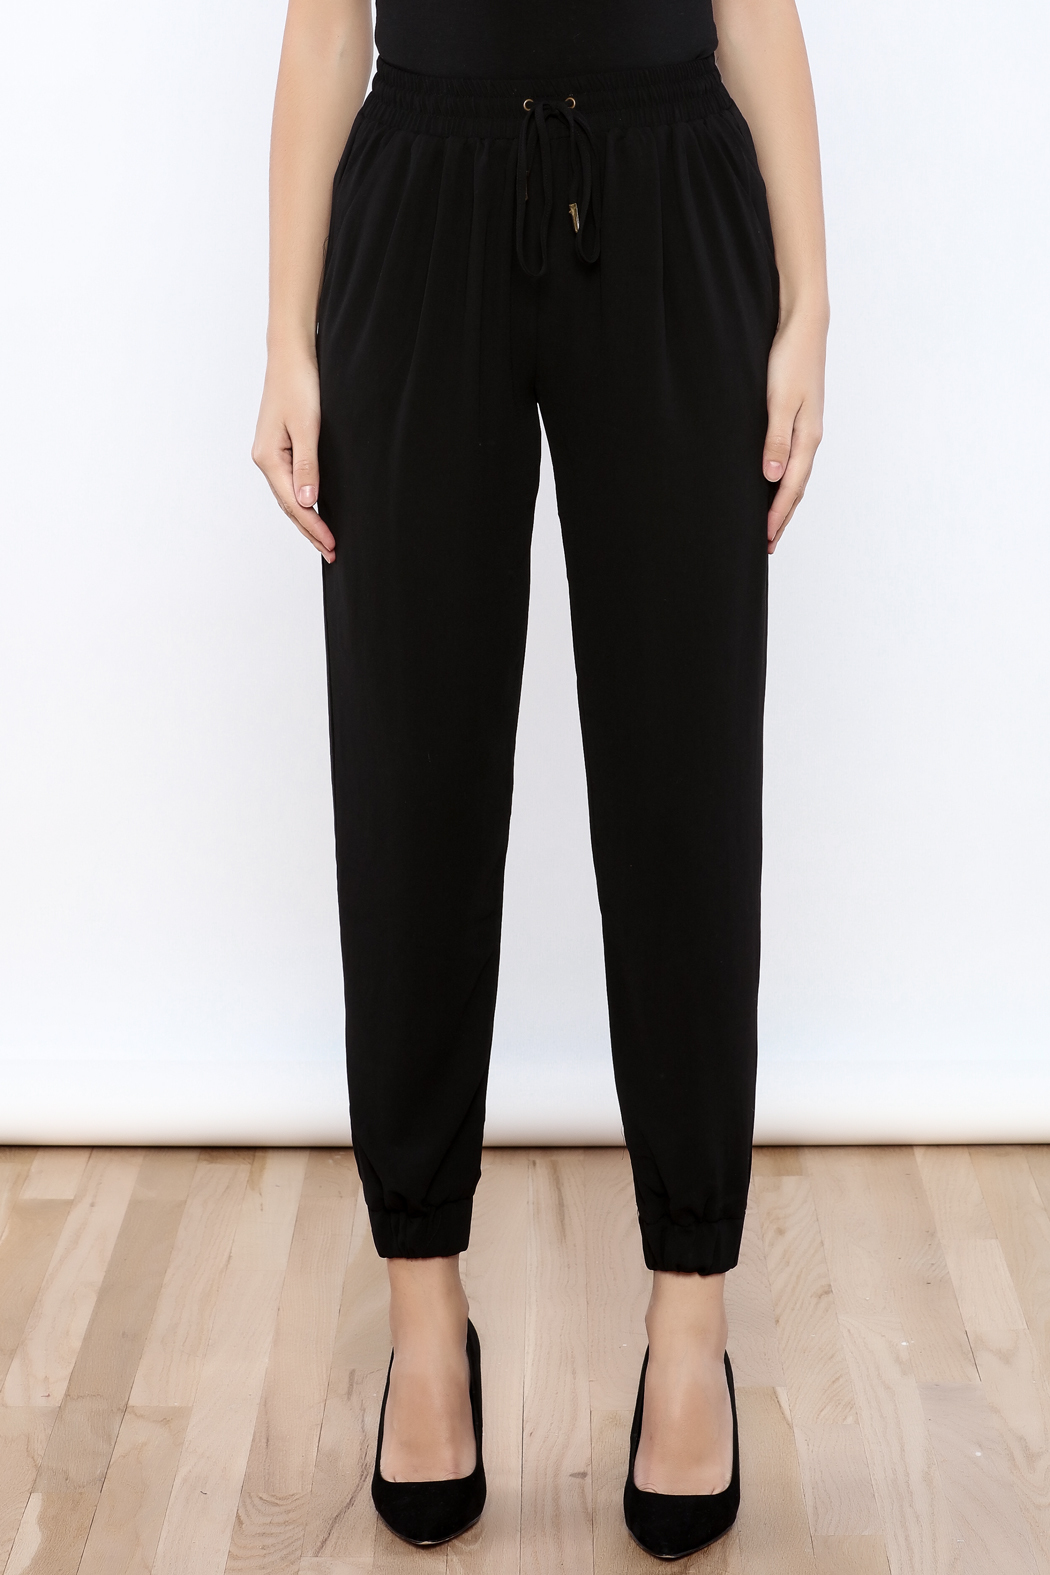 essue Crepe Joggers - Side Cropped Image